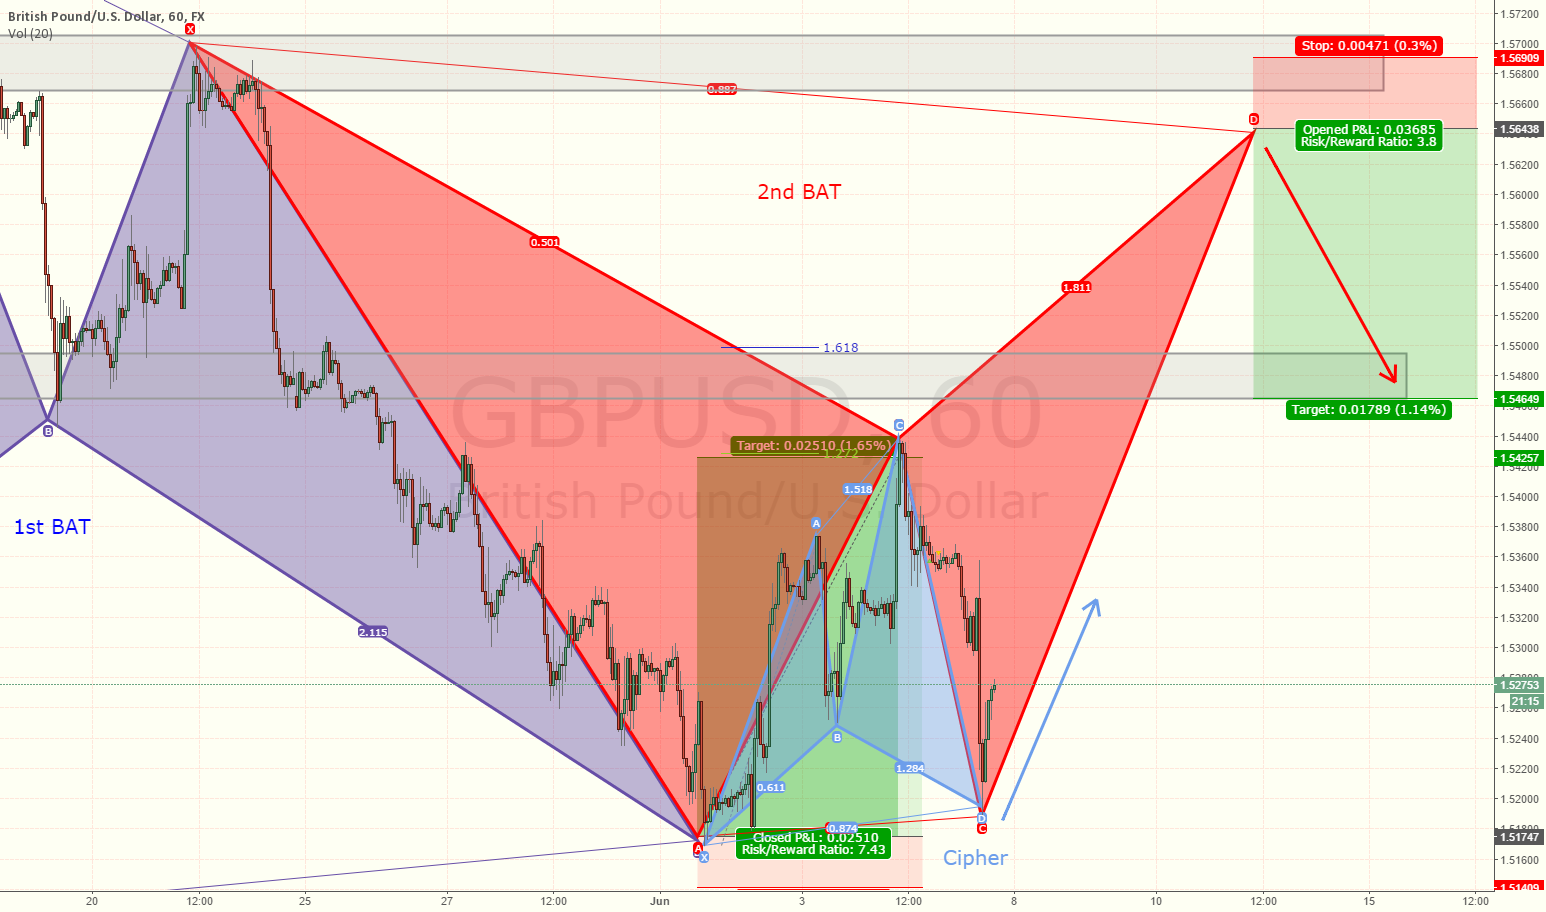 GBPUSD - Bat -> Cipher -Bat